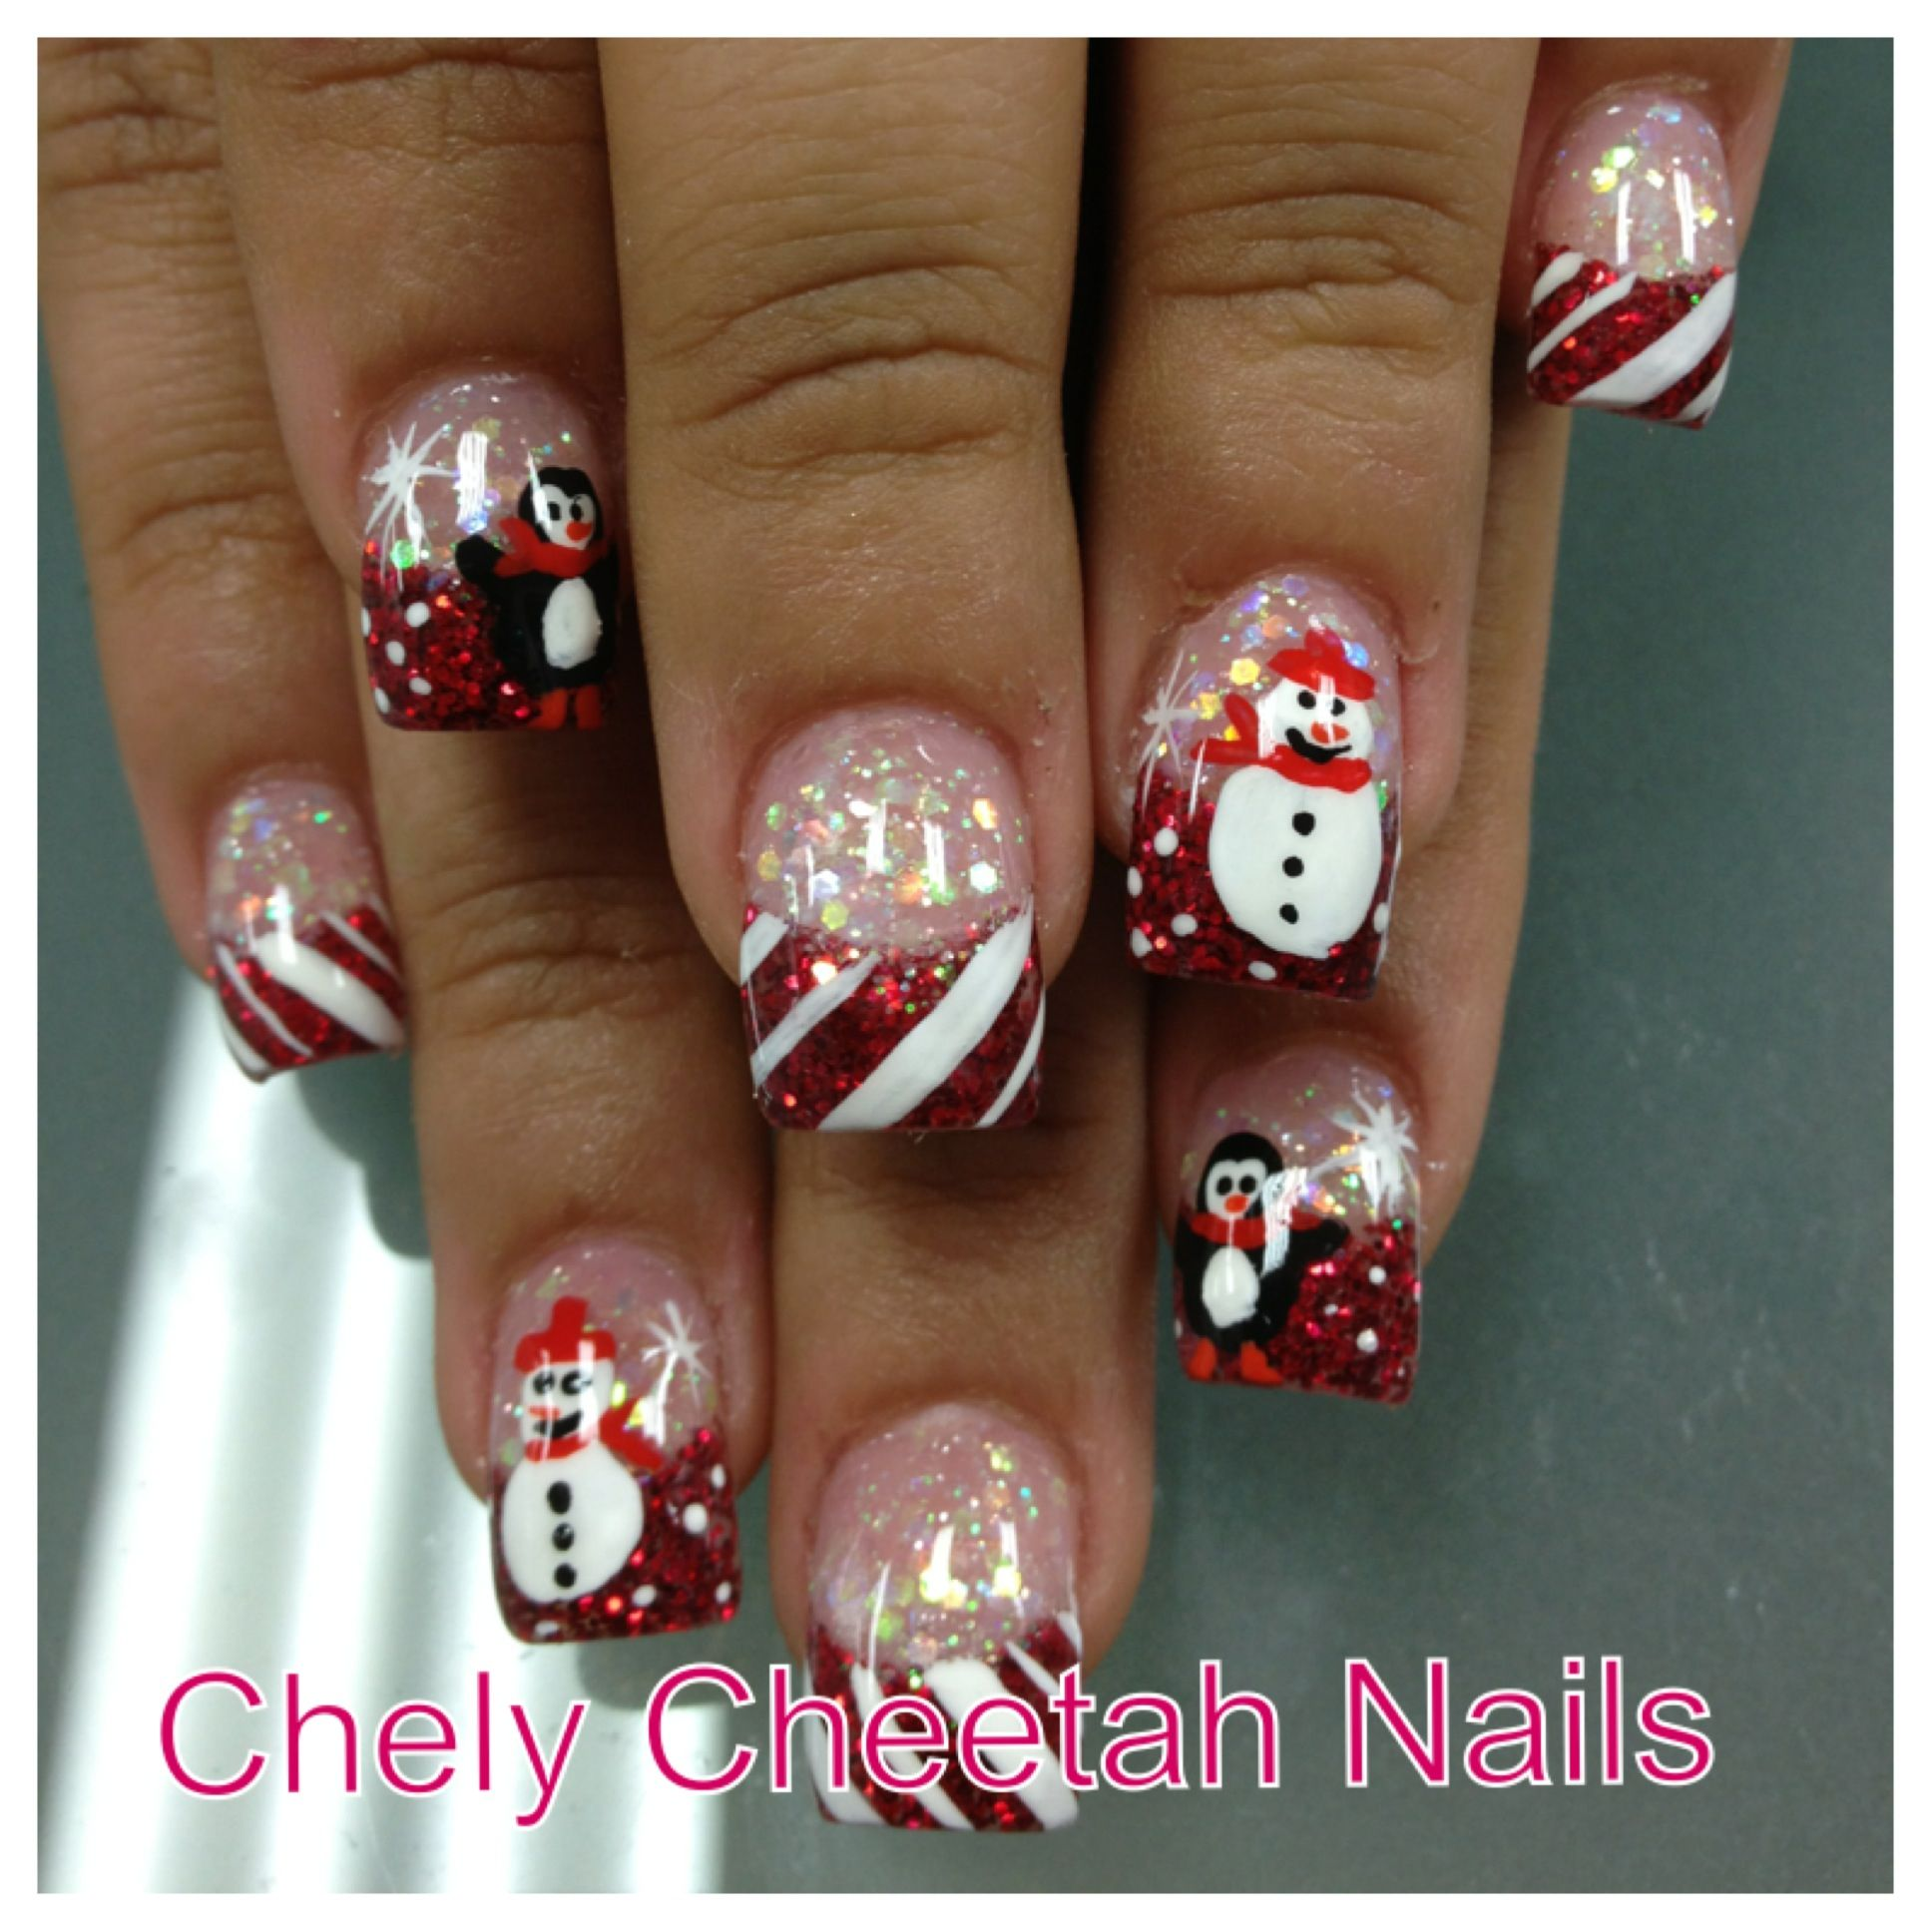 Chely Cheetah Nails. Acrylic nails. Rockstar Christmas nail art ...